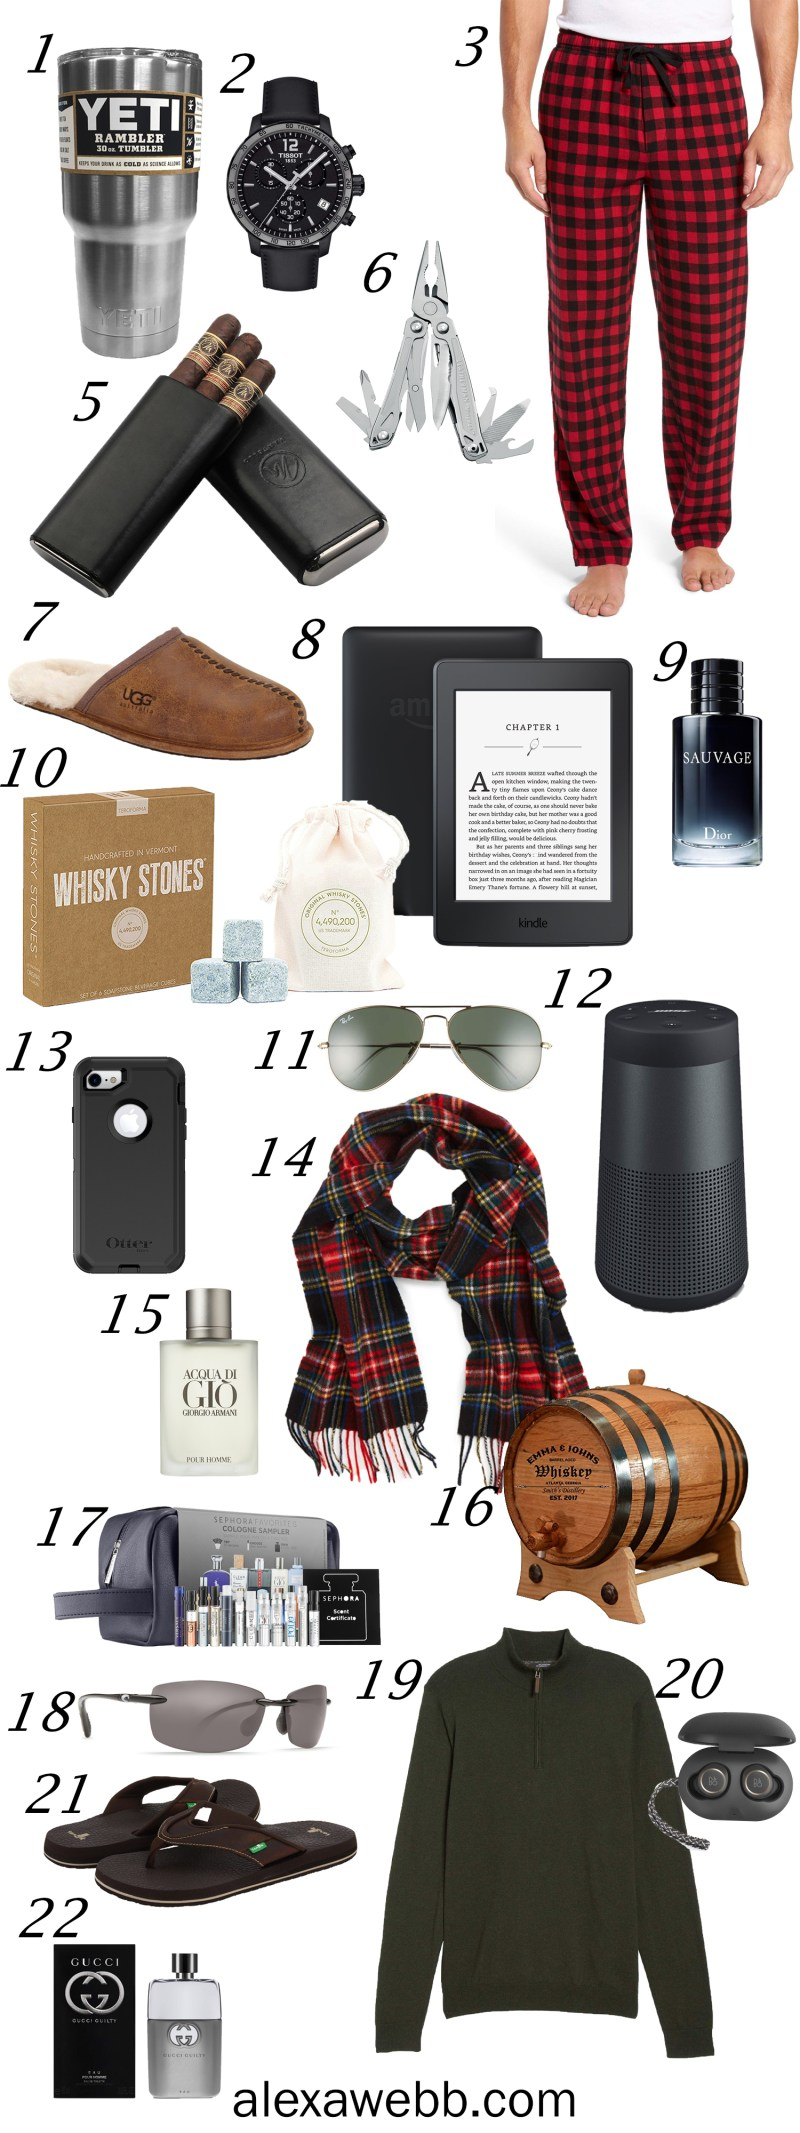 Christmas Gift Ideas for Men - Holiday GIfts - alexawebb.com